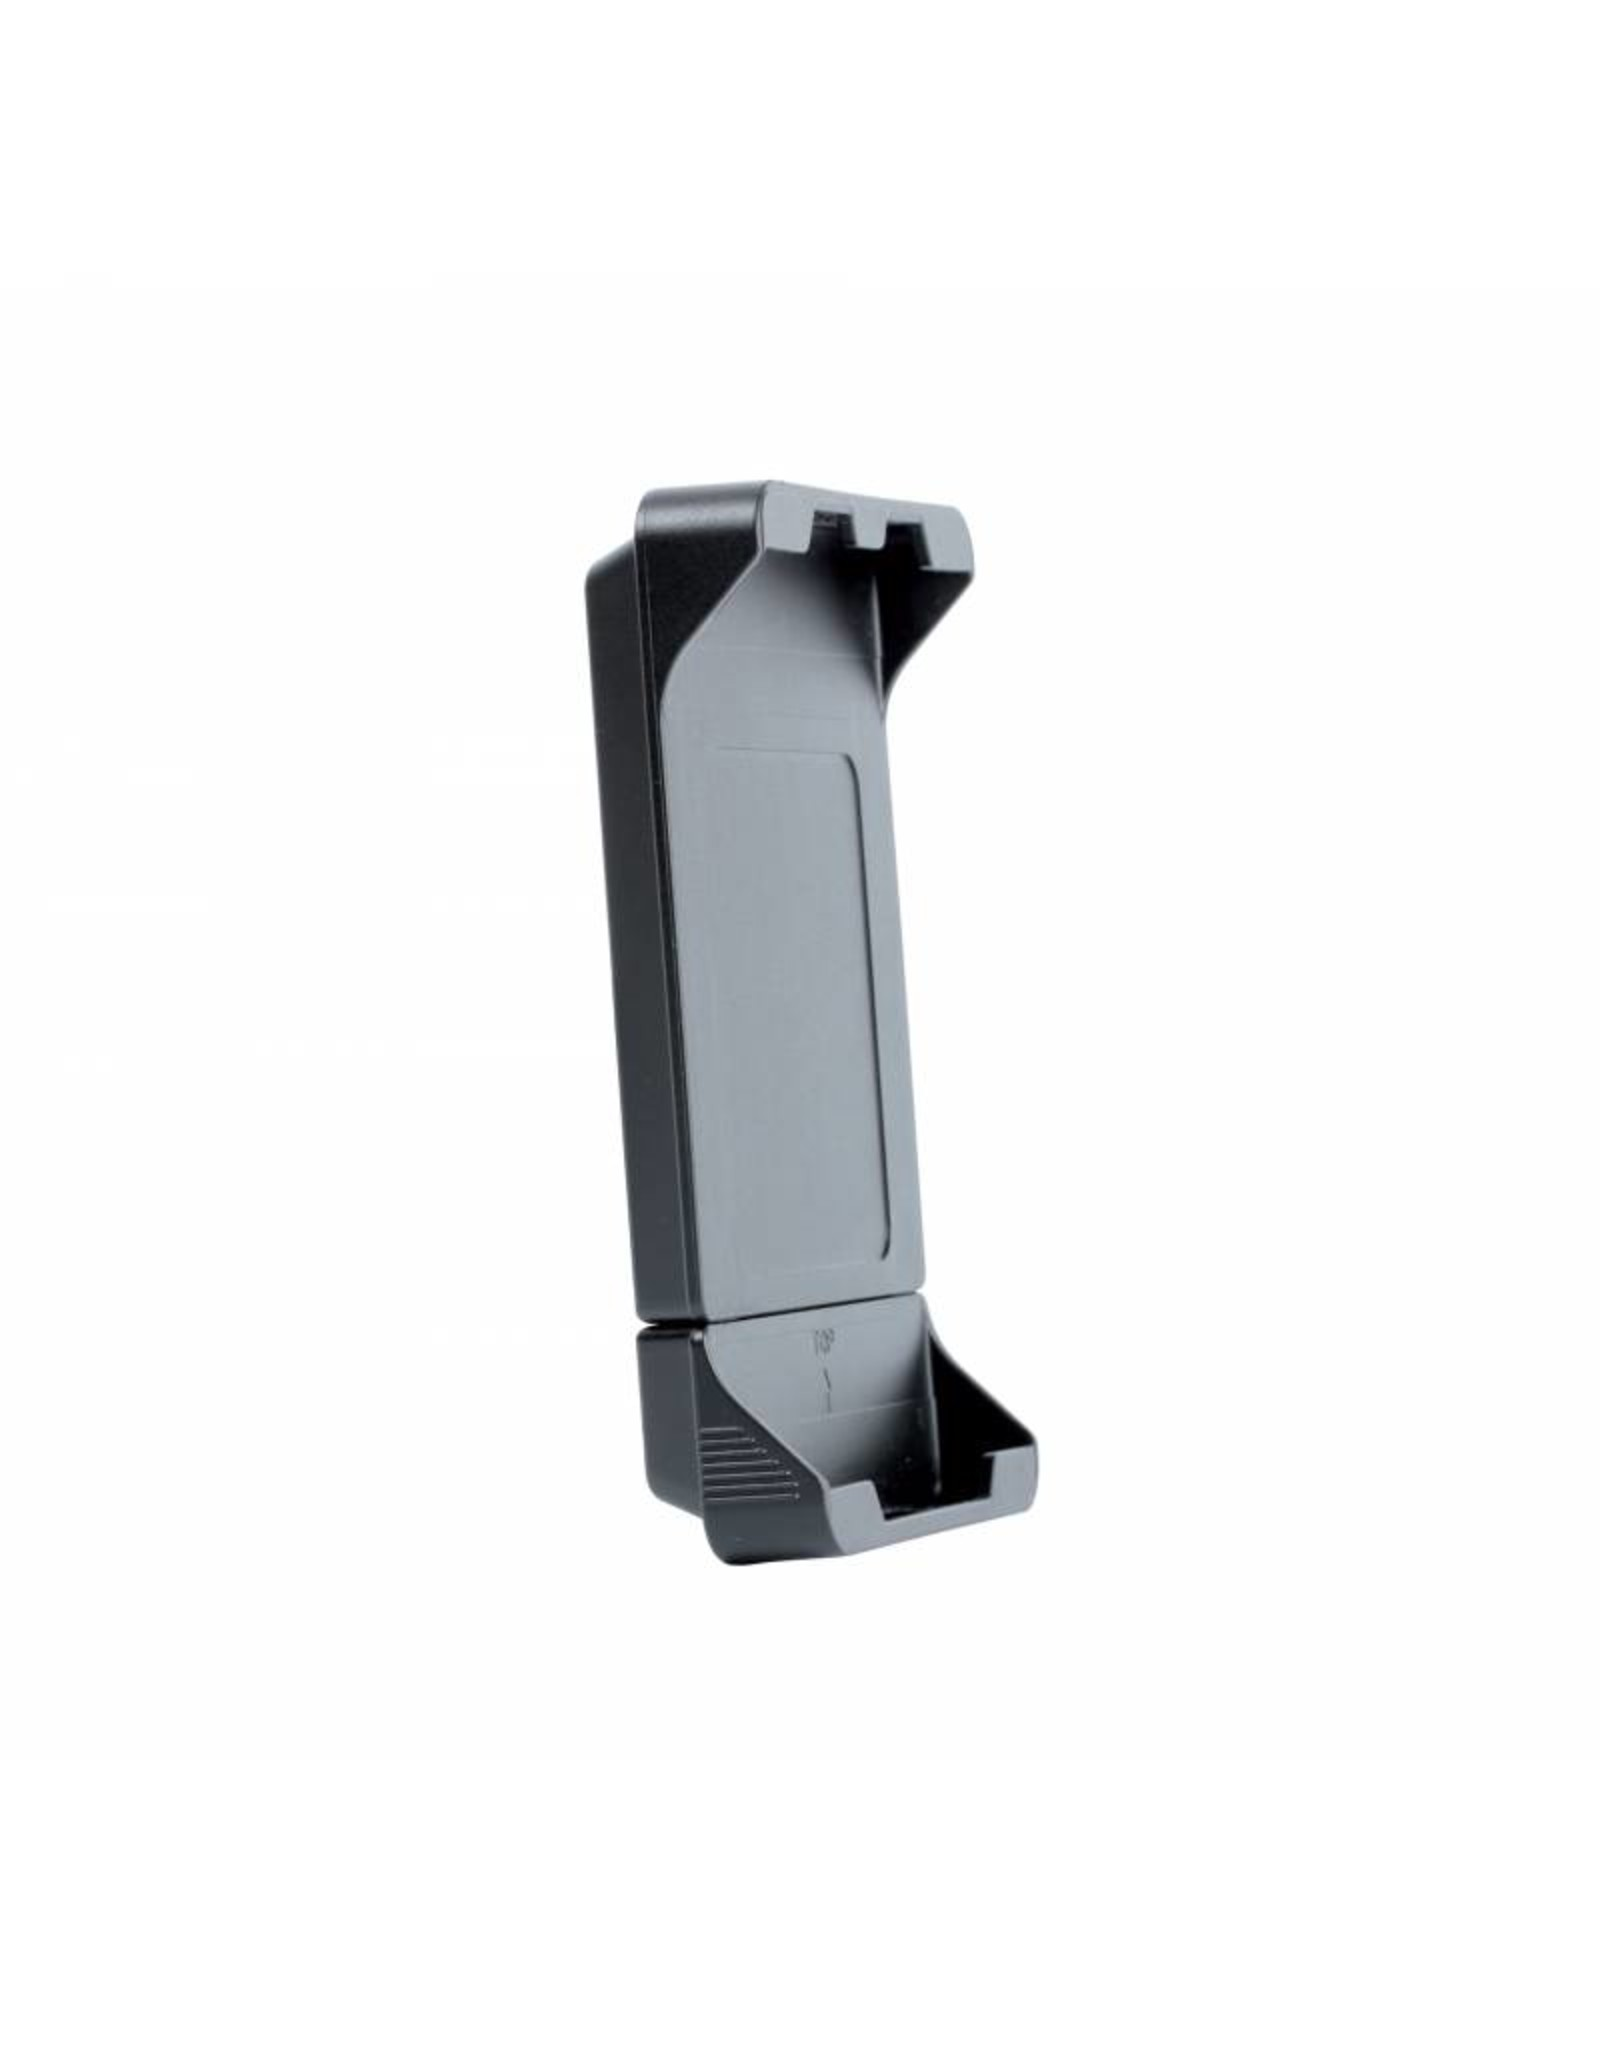 ZEFAL Zefal Z-Console Universal M Case For phones up to 74mm